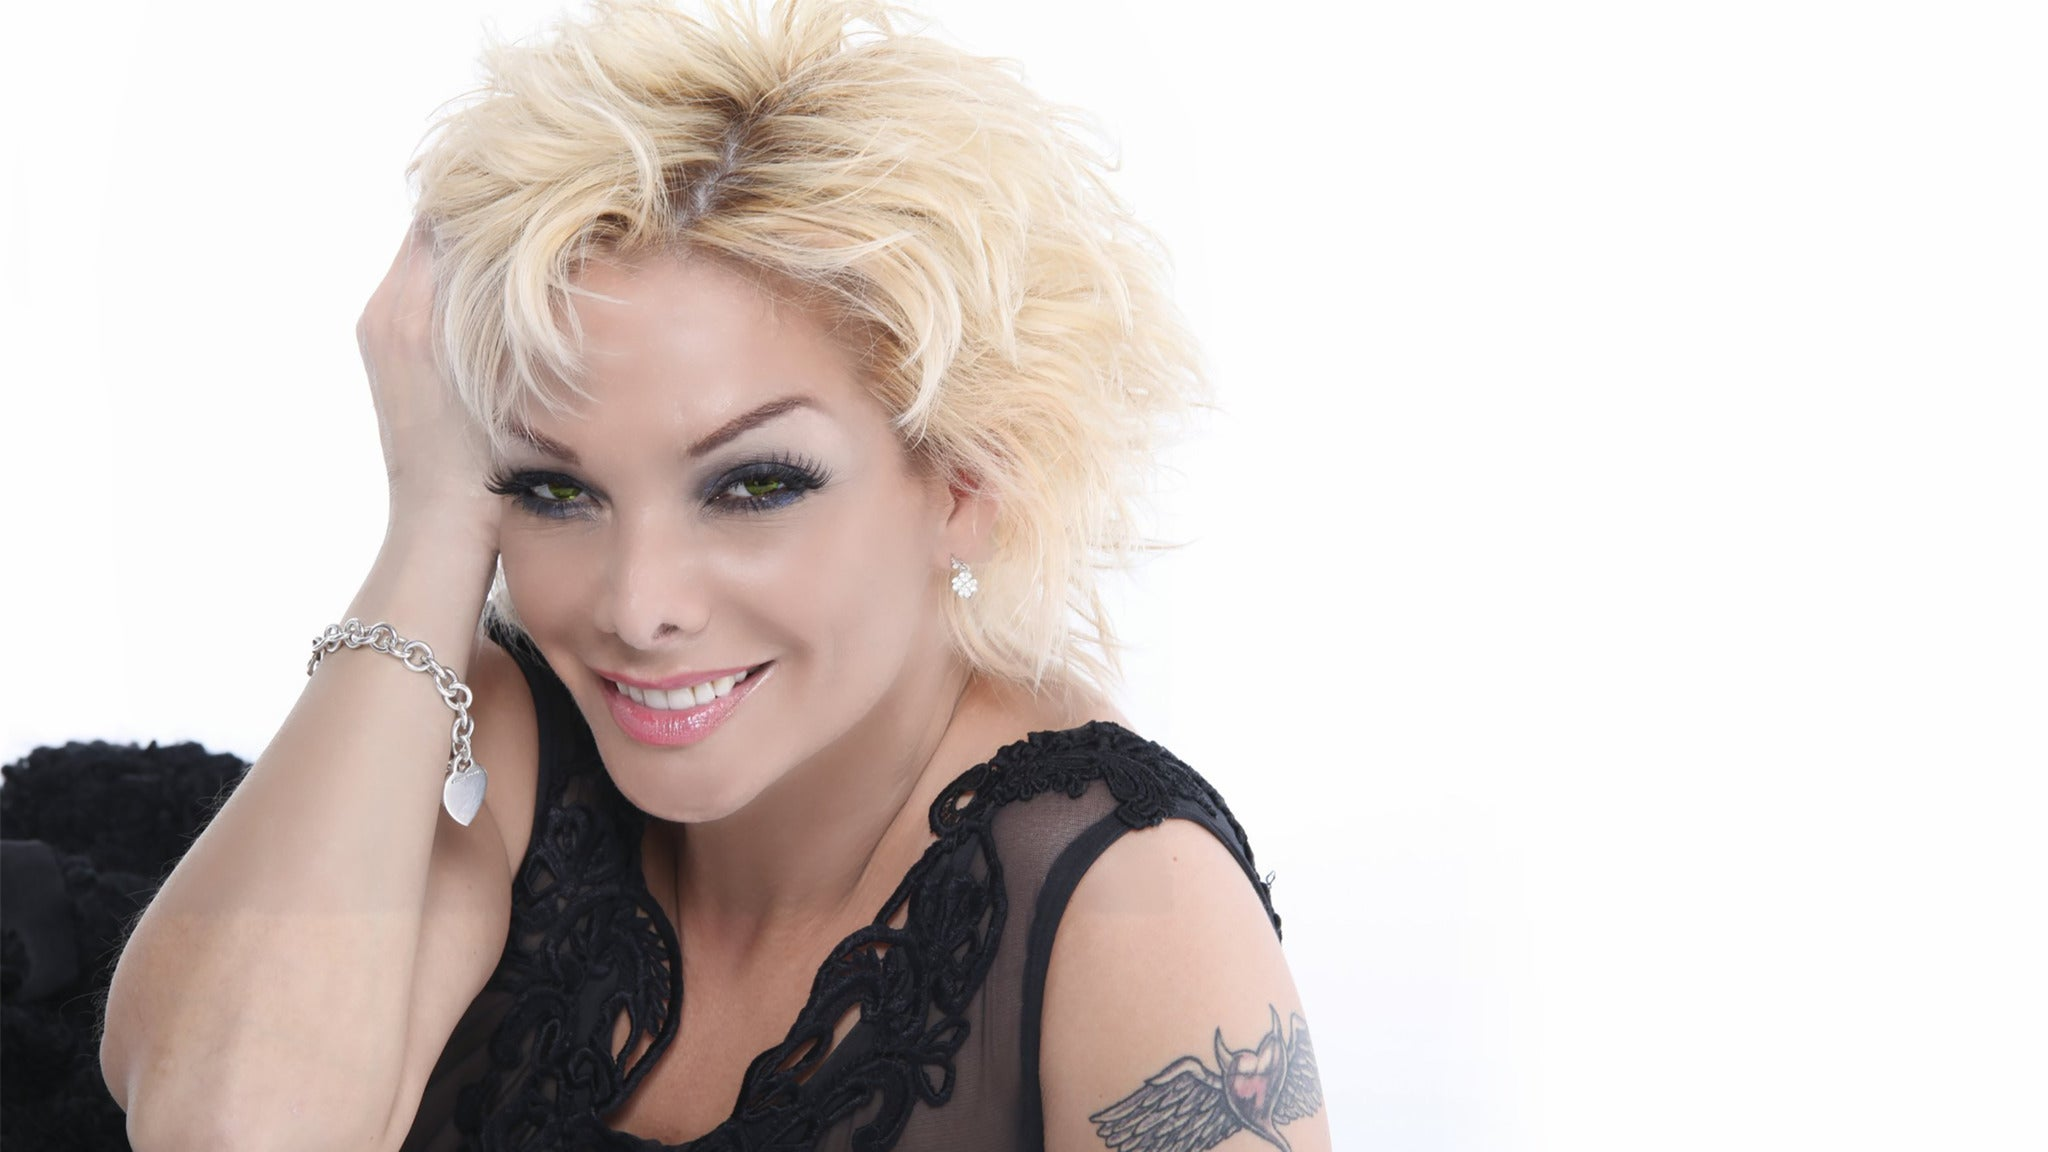 Marisela at Microsoft Theatre LA Live - Los Angeles, CA 90015